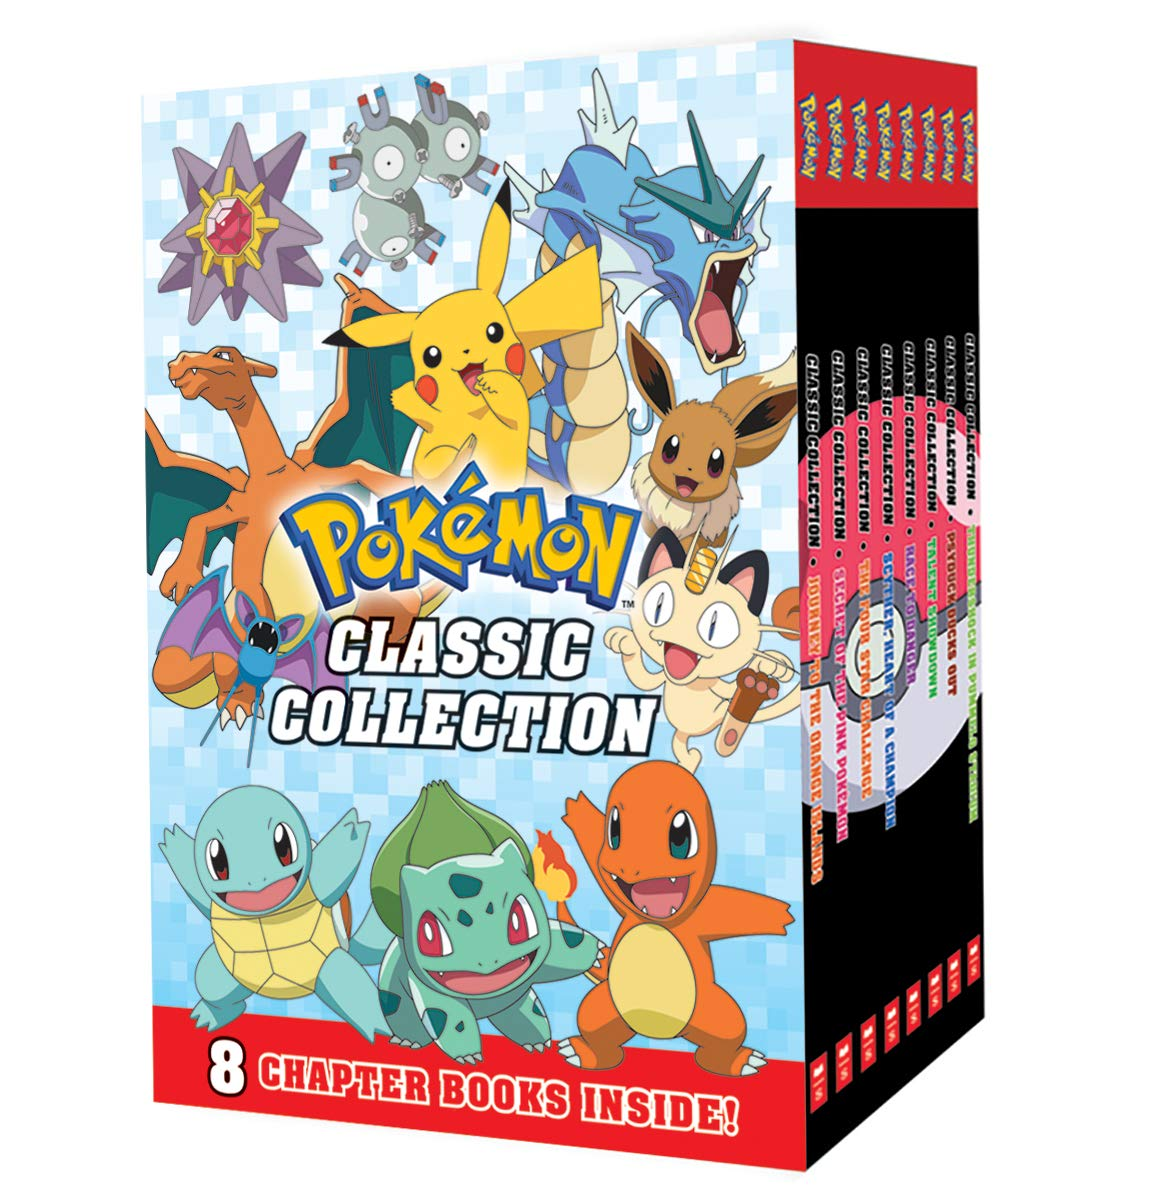 Classic Chapter Book Collection (Pokémon) by SCHOLASTIC